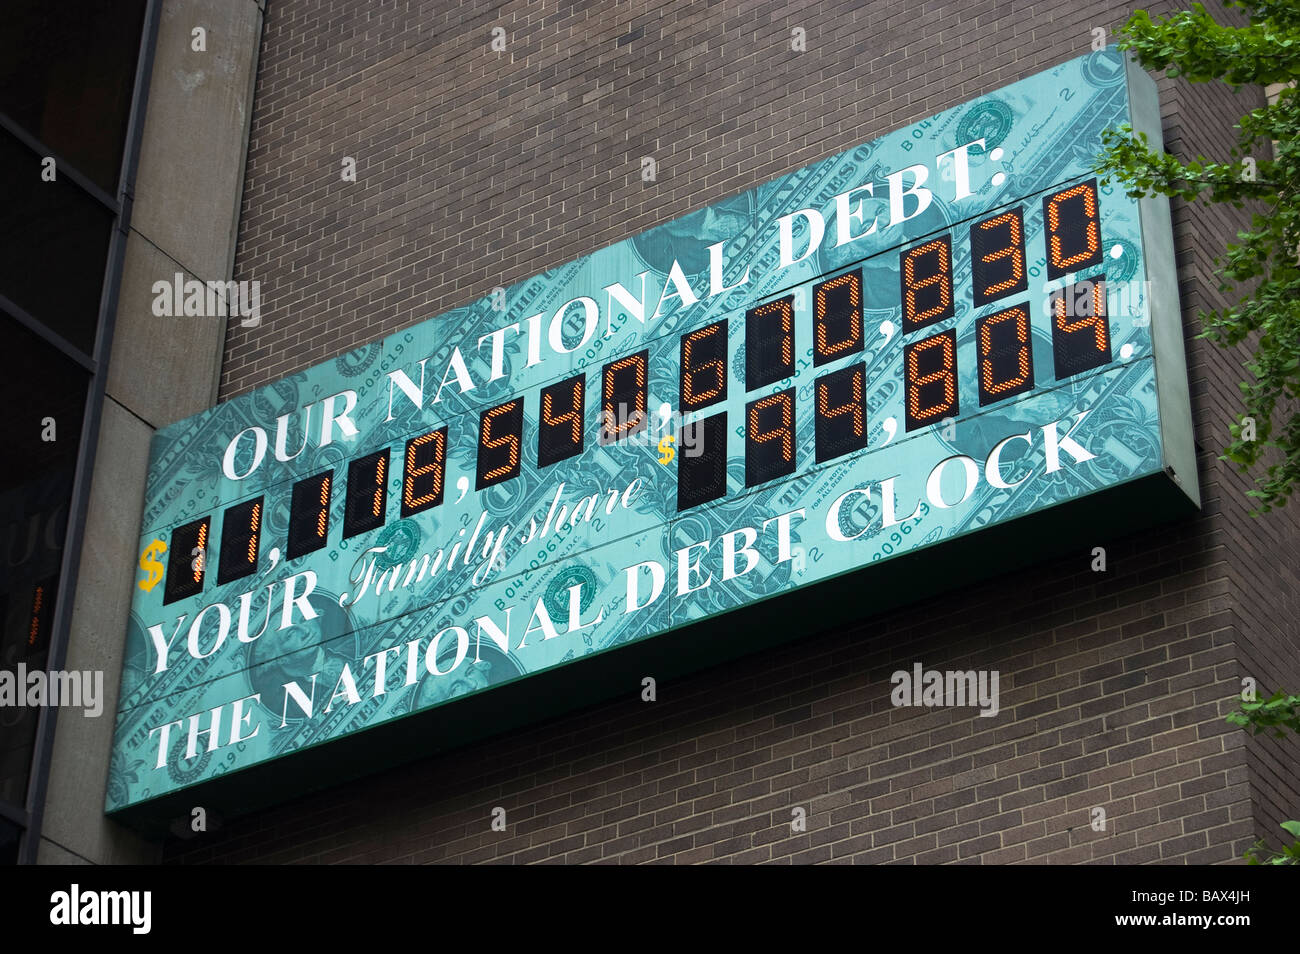 National Debt Clock in New York City, taken on May 06, 2009, showing over $11 Trillion in national debt (Editorial - Stock Image